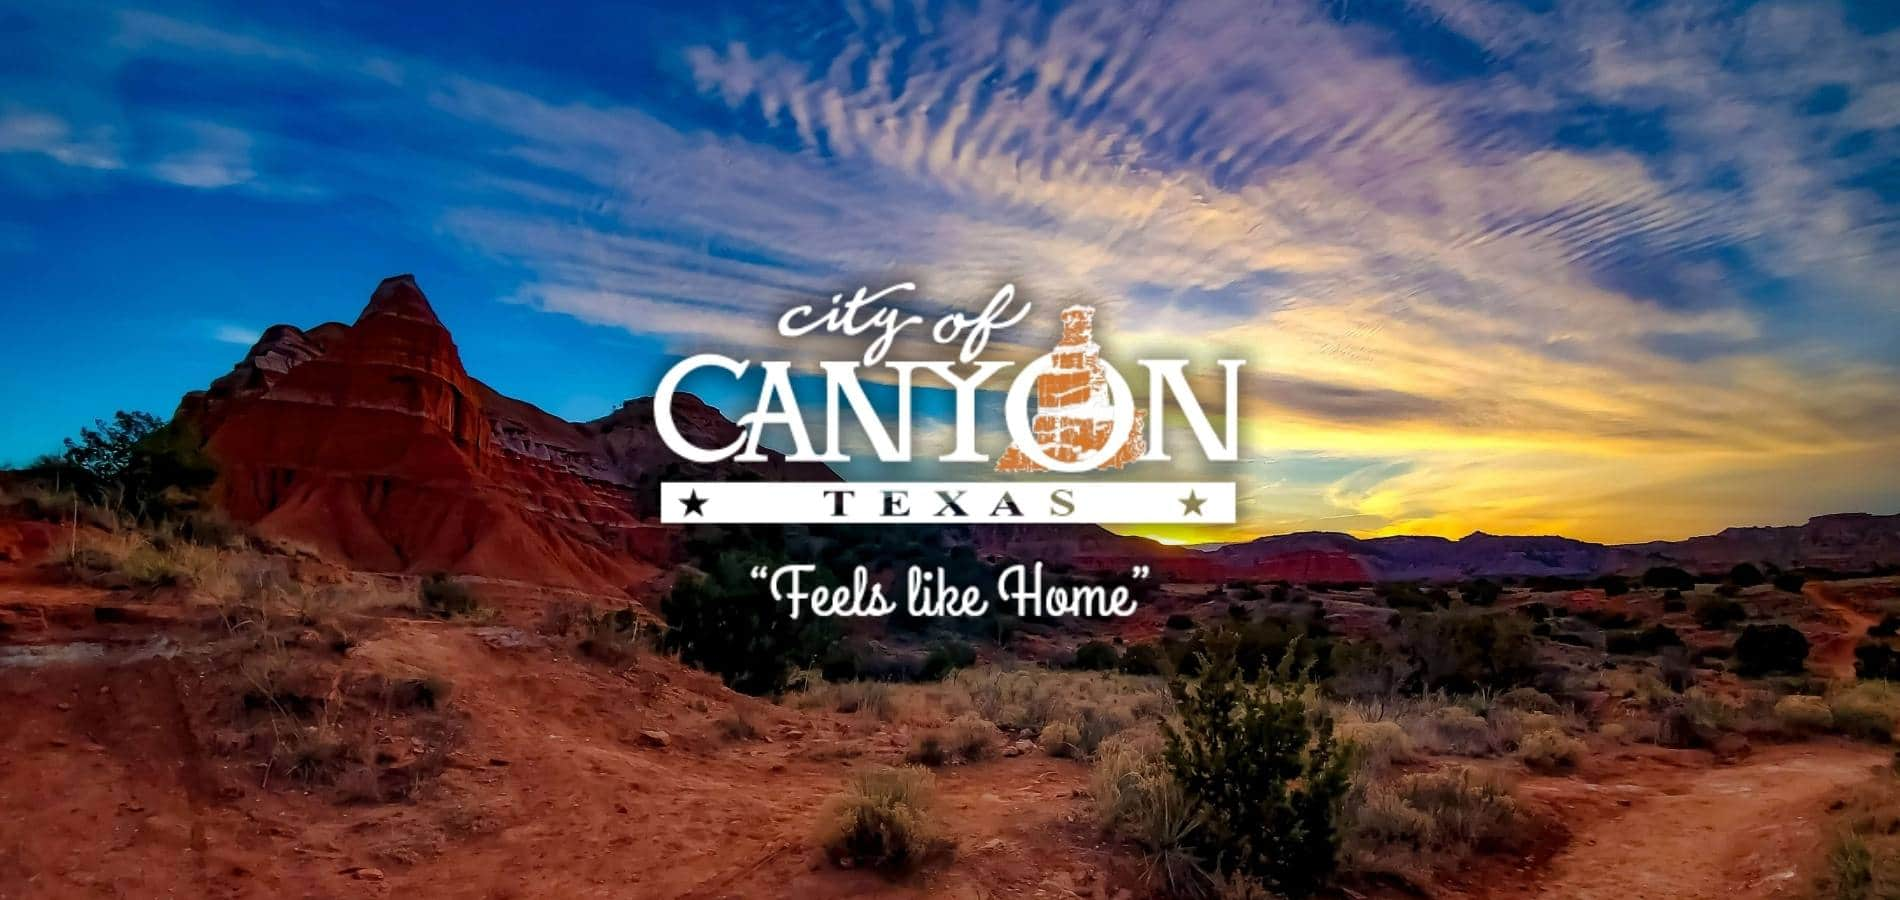 City of Canyon Texas